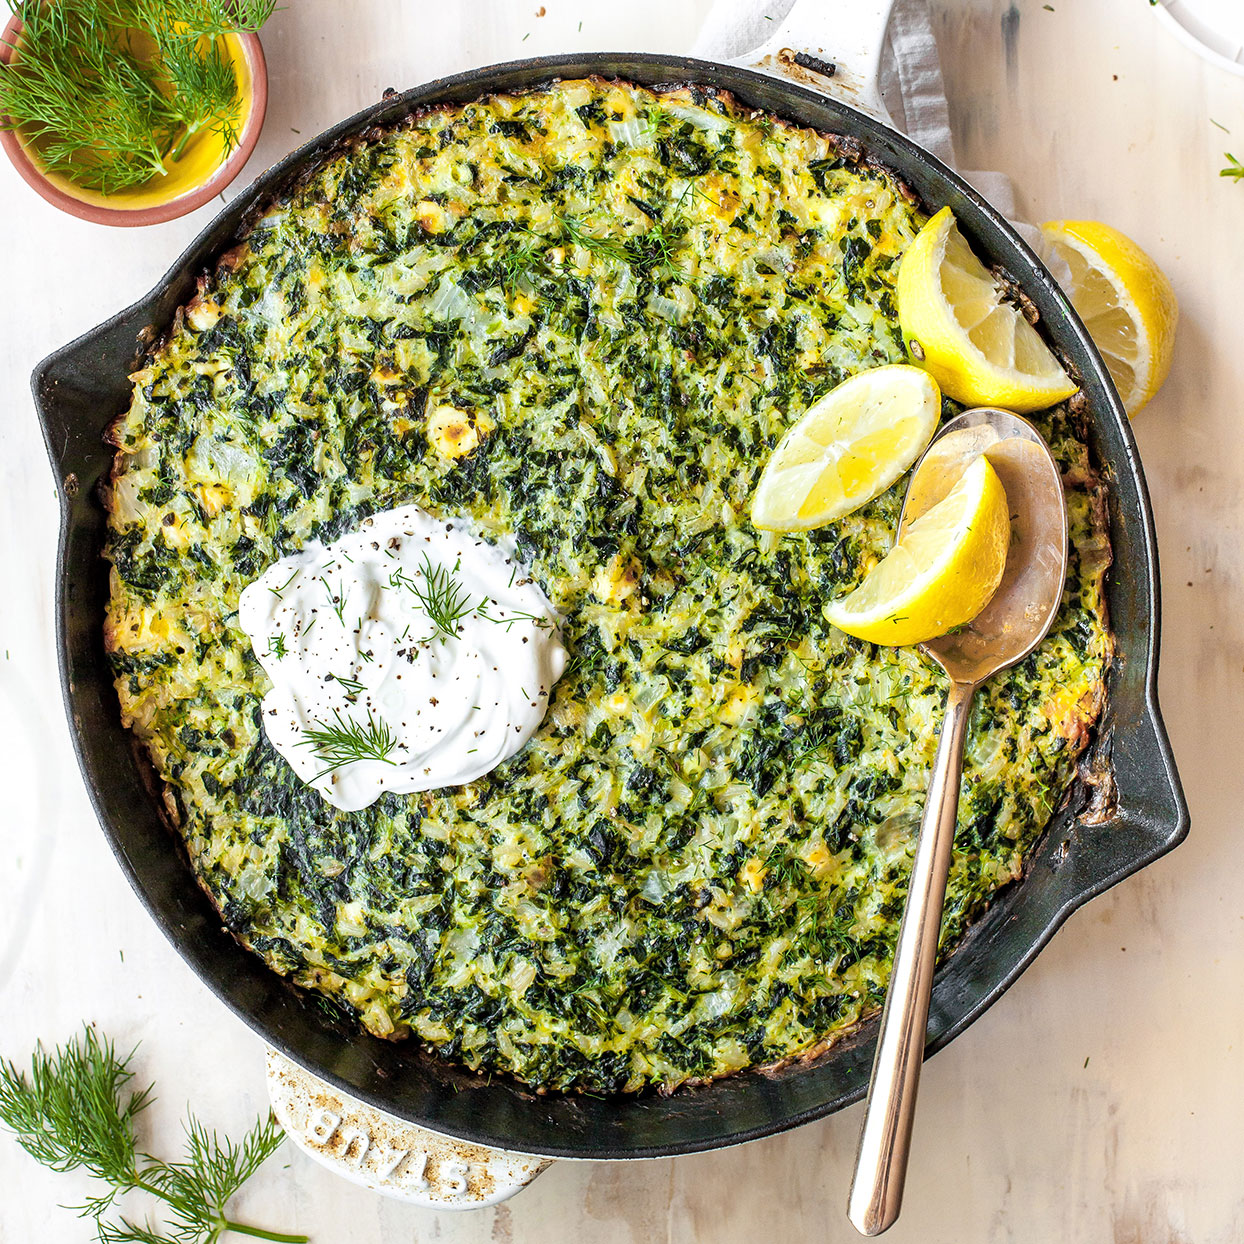 This one-pan recipe is the casserole version of spanakopita! It's hearty enough to enjoy as a vegetarian lunch or dinner, yet versatile enough to serve alongside just about any protein. To make it extra creamy, top each serving with a dollop of sour cream. Source: EatingWell.com, July 2020